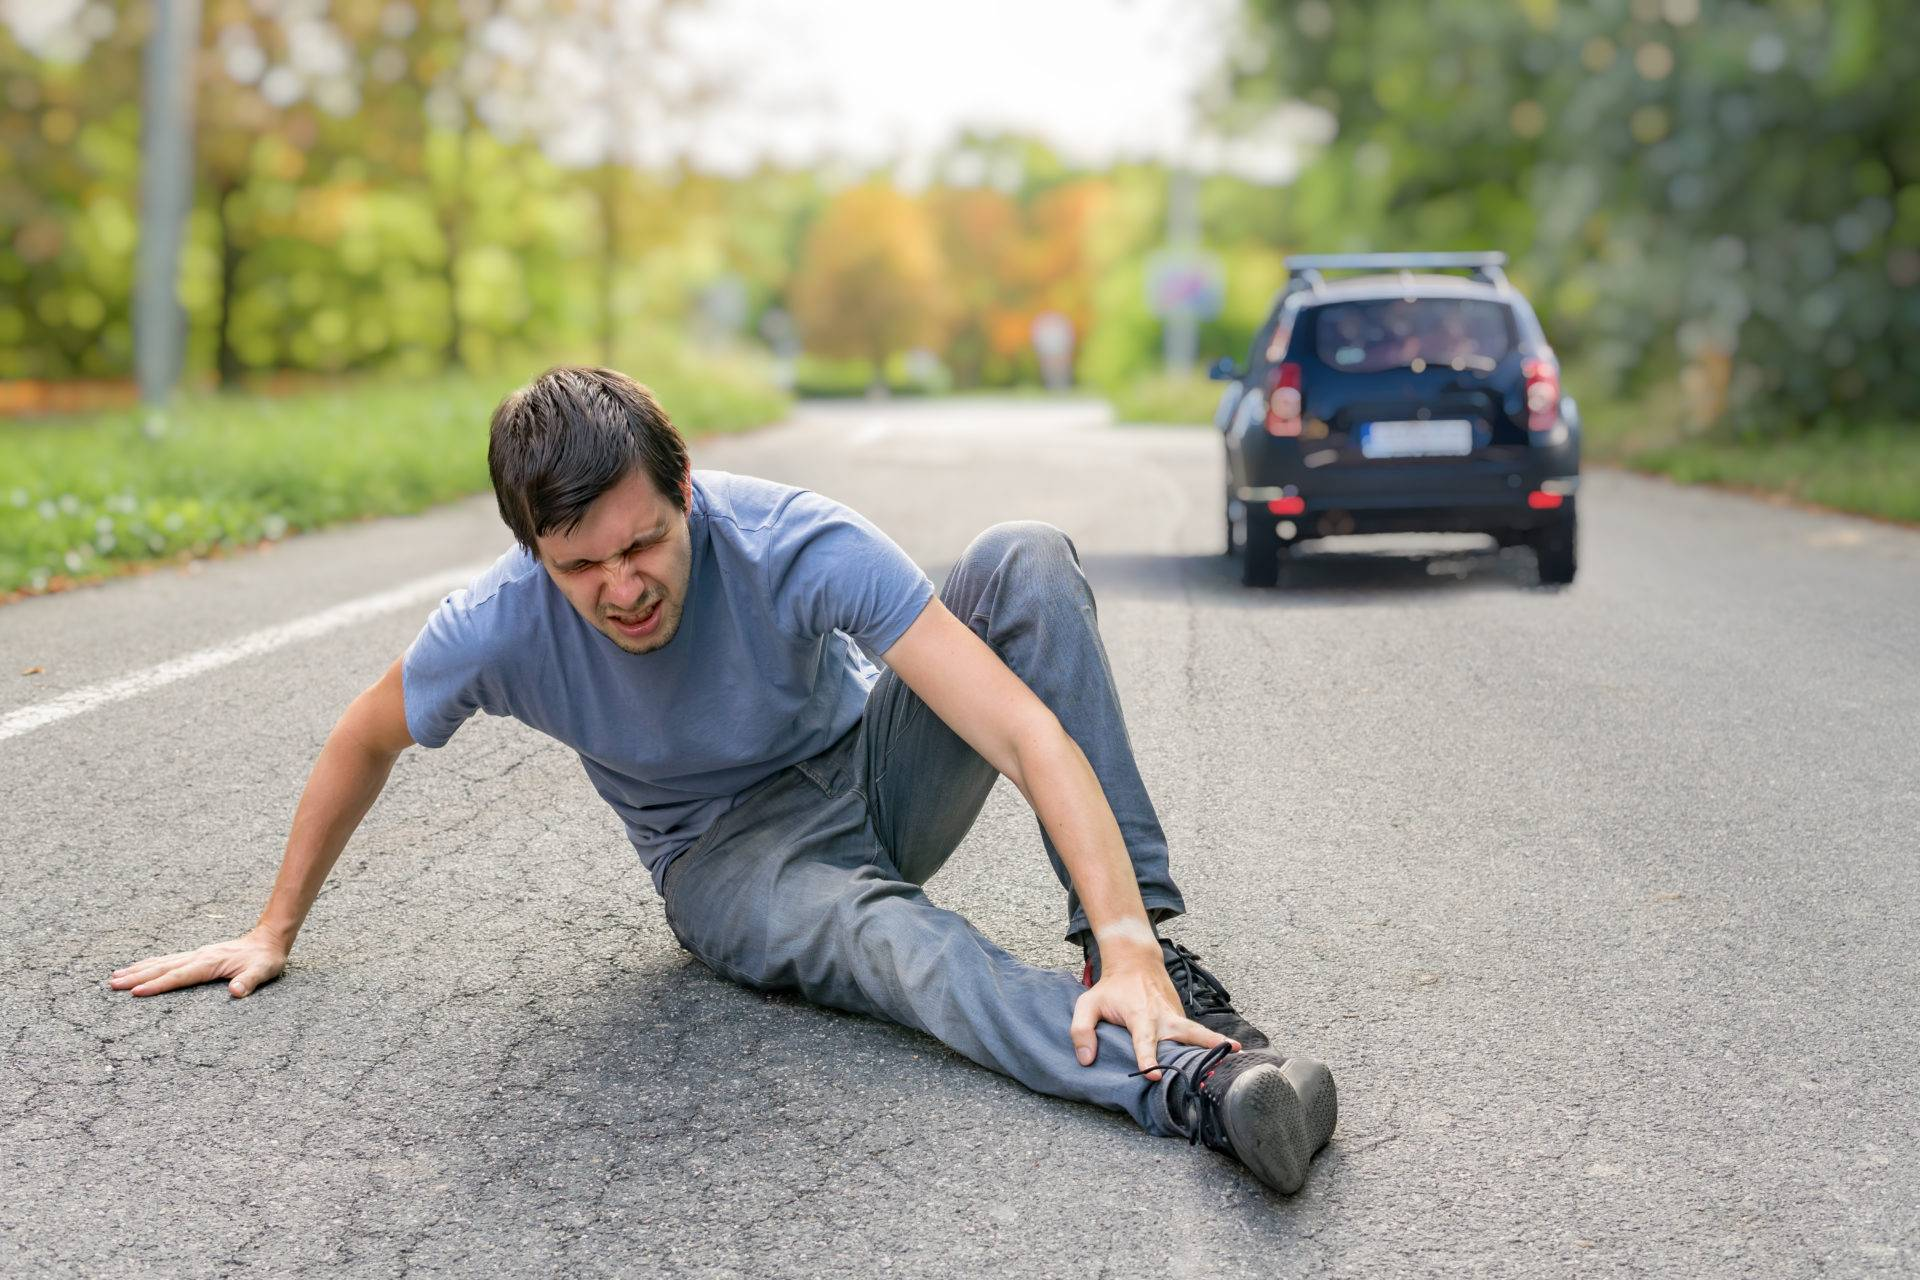 Conduct After an Accident